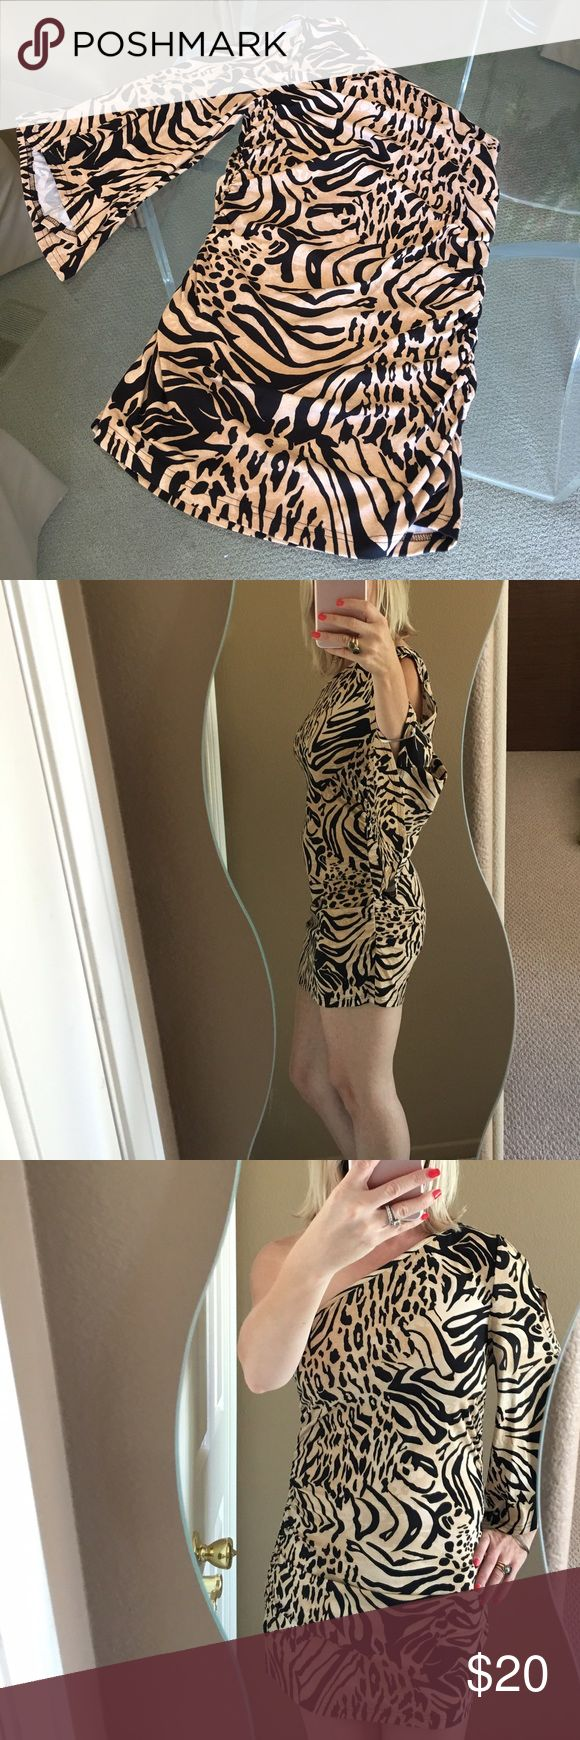 ❤️Venus Animal Print One Sleeved Mini Dress❤️ Sexy and cute cotton one sleeved animal print mini dress! Cut outs on bell sleeve expose upper arm and forearm. In excellent condition! 🌟 Venus Dresses Mini